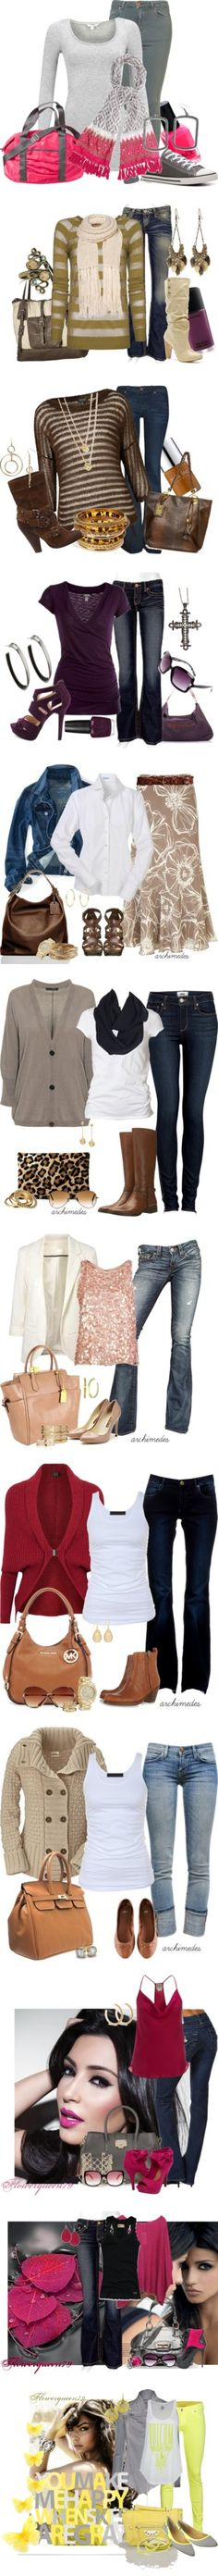 4 by shnnn-ellis on Polyvore featuring moda, J.Crew, Topshop, mbyM, Converse, Old Navy, Monsoon, Big Star, MANGO and Qupid